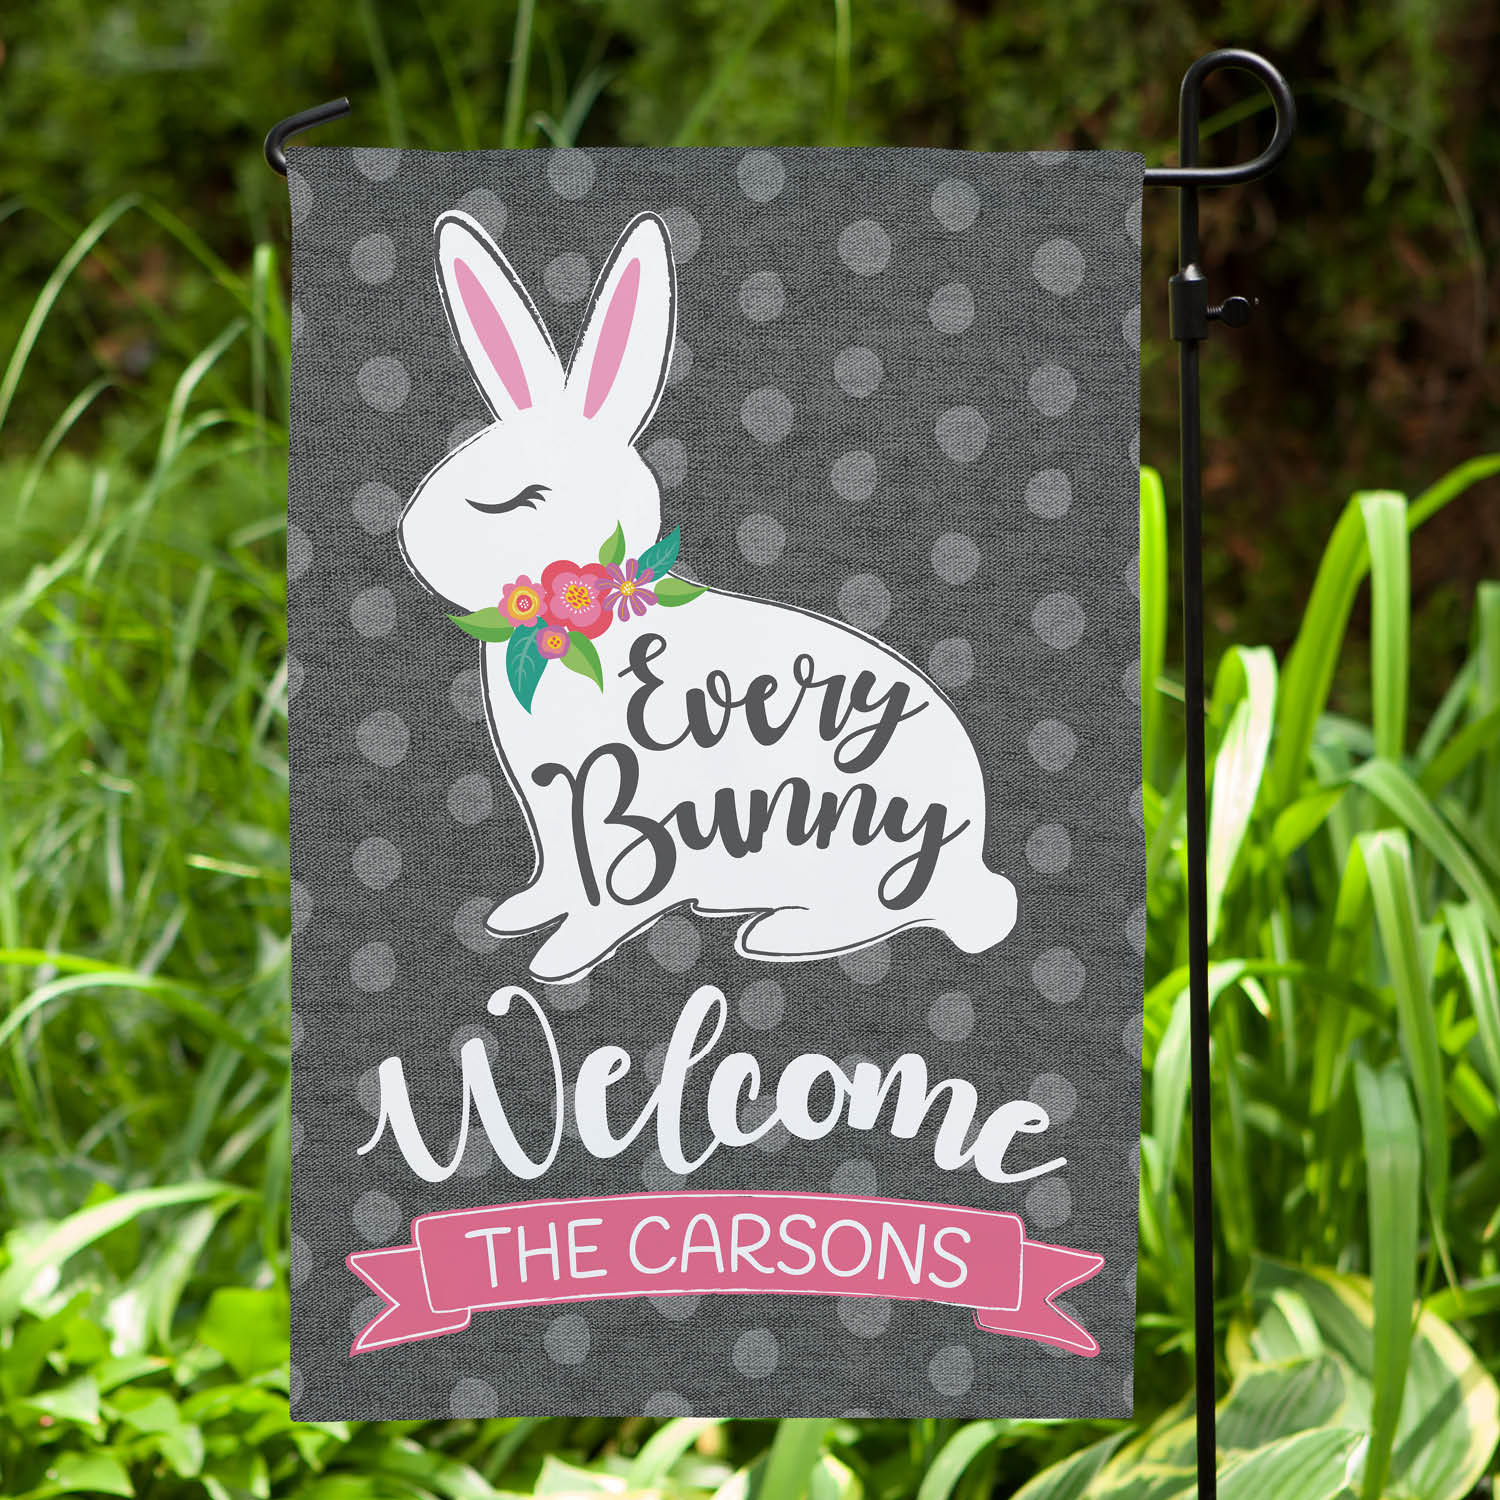 Every Bunny Welcome Personalized Garden Flag